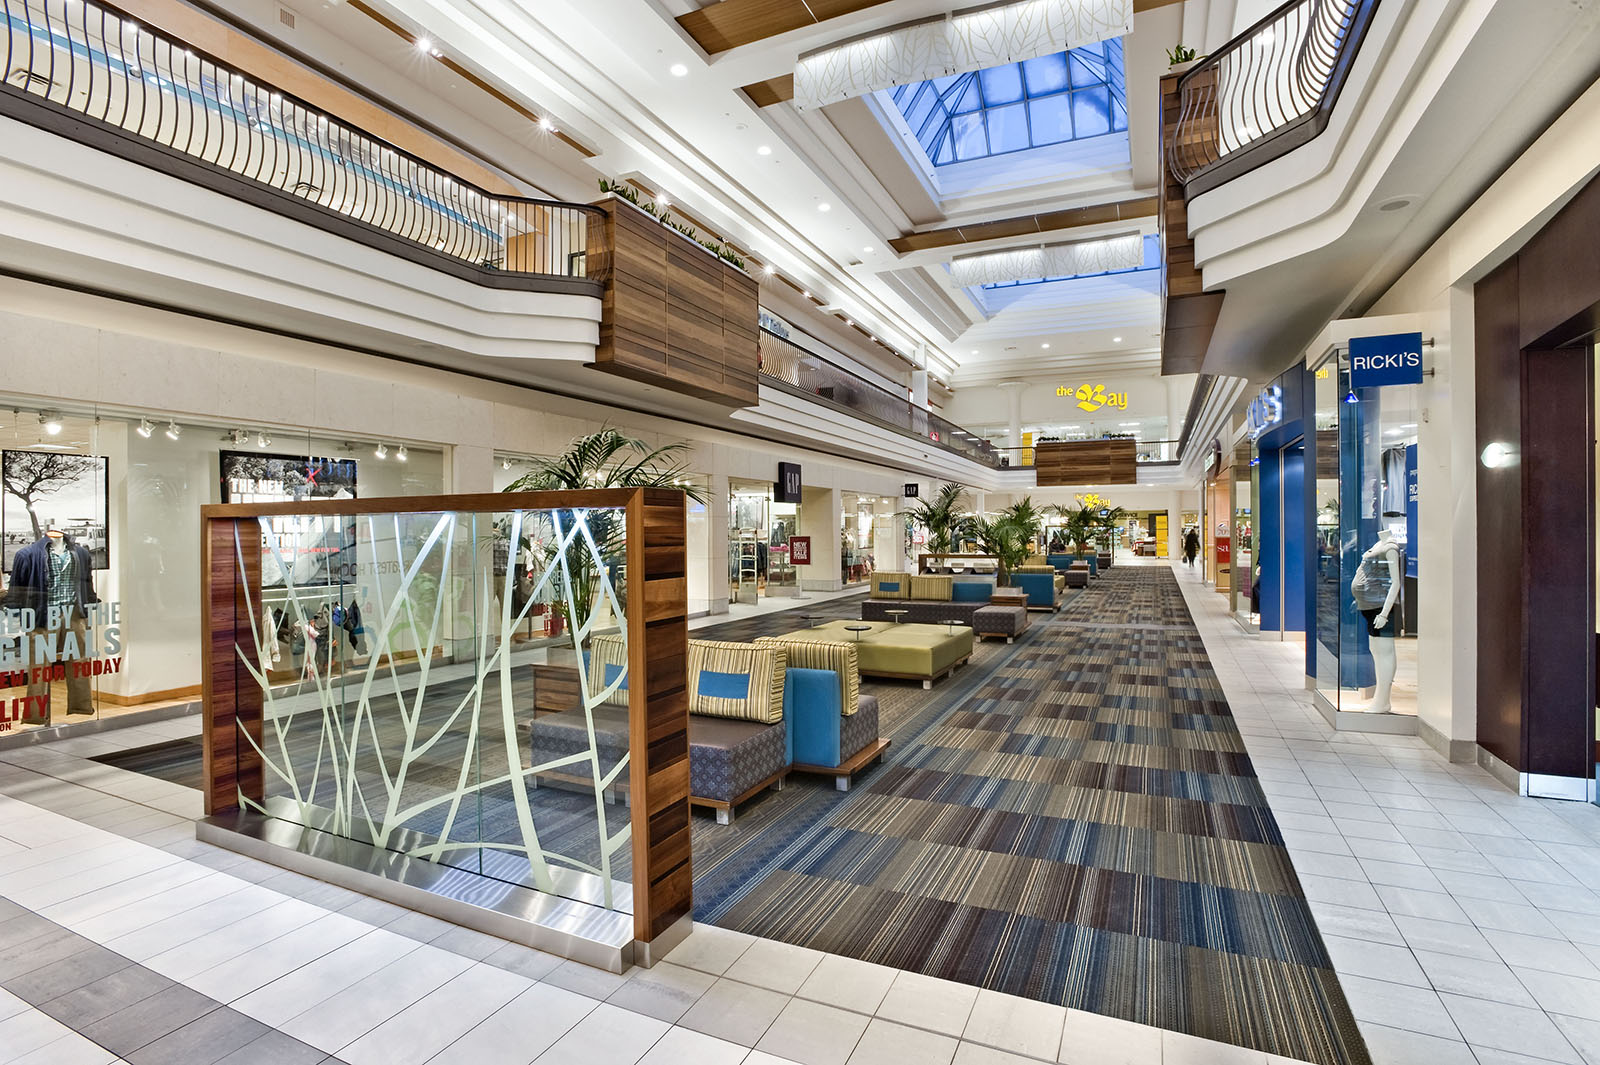 Interior view of Pickering Town Centre Shopping Mall